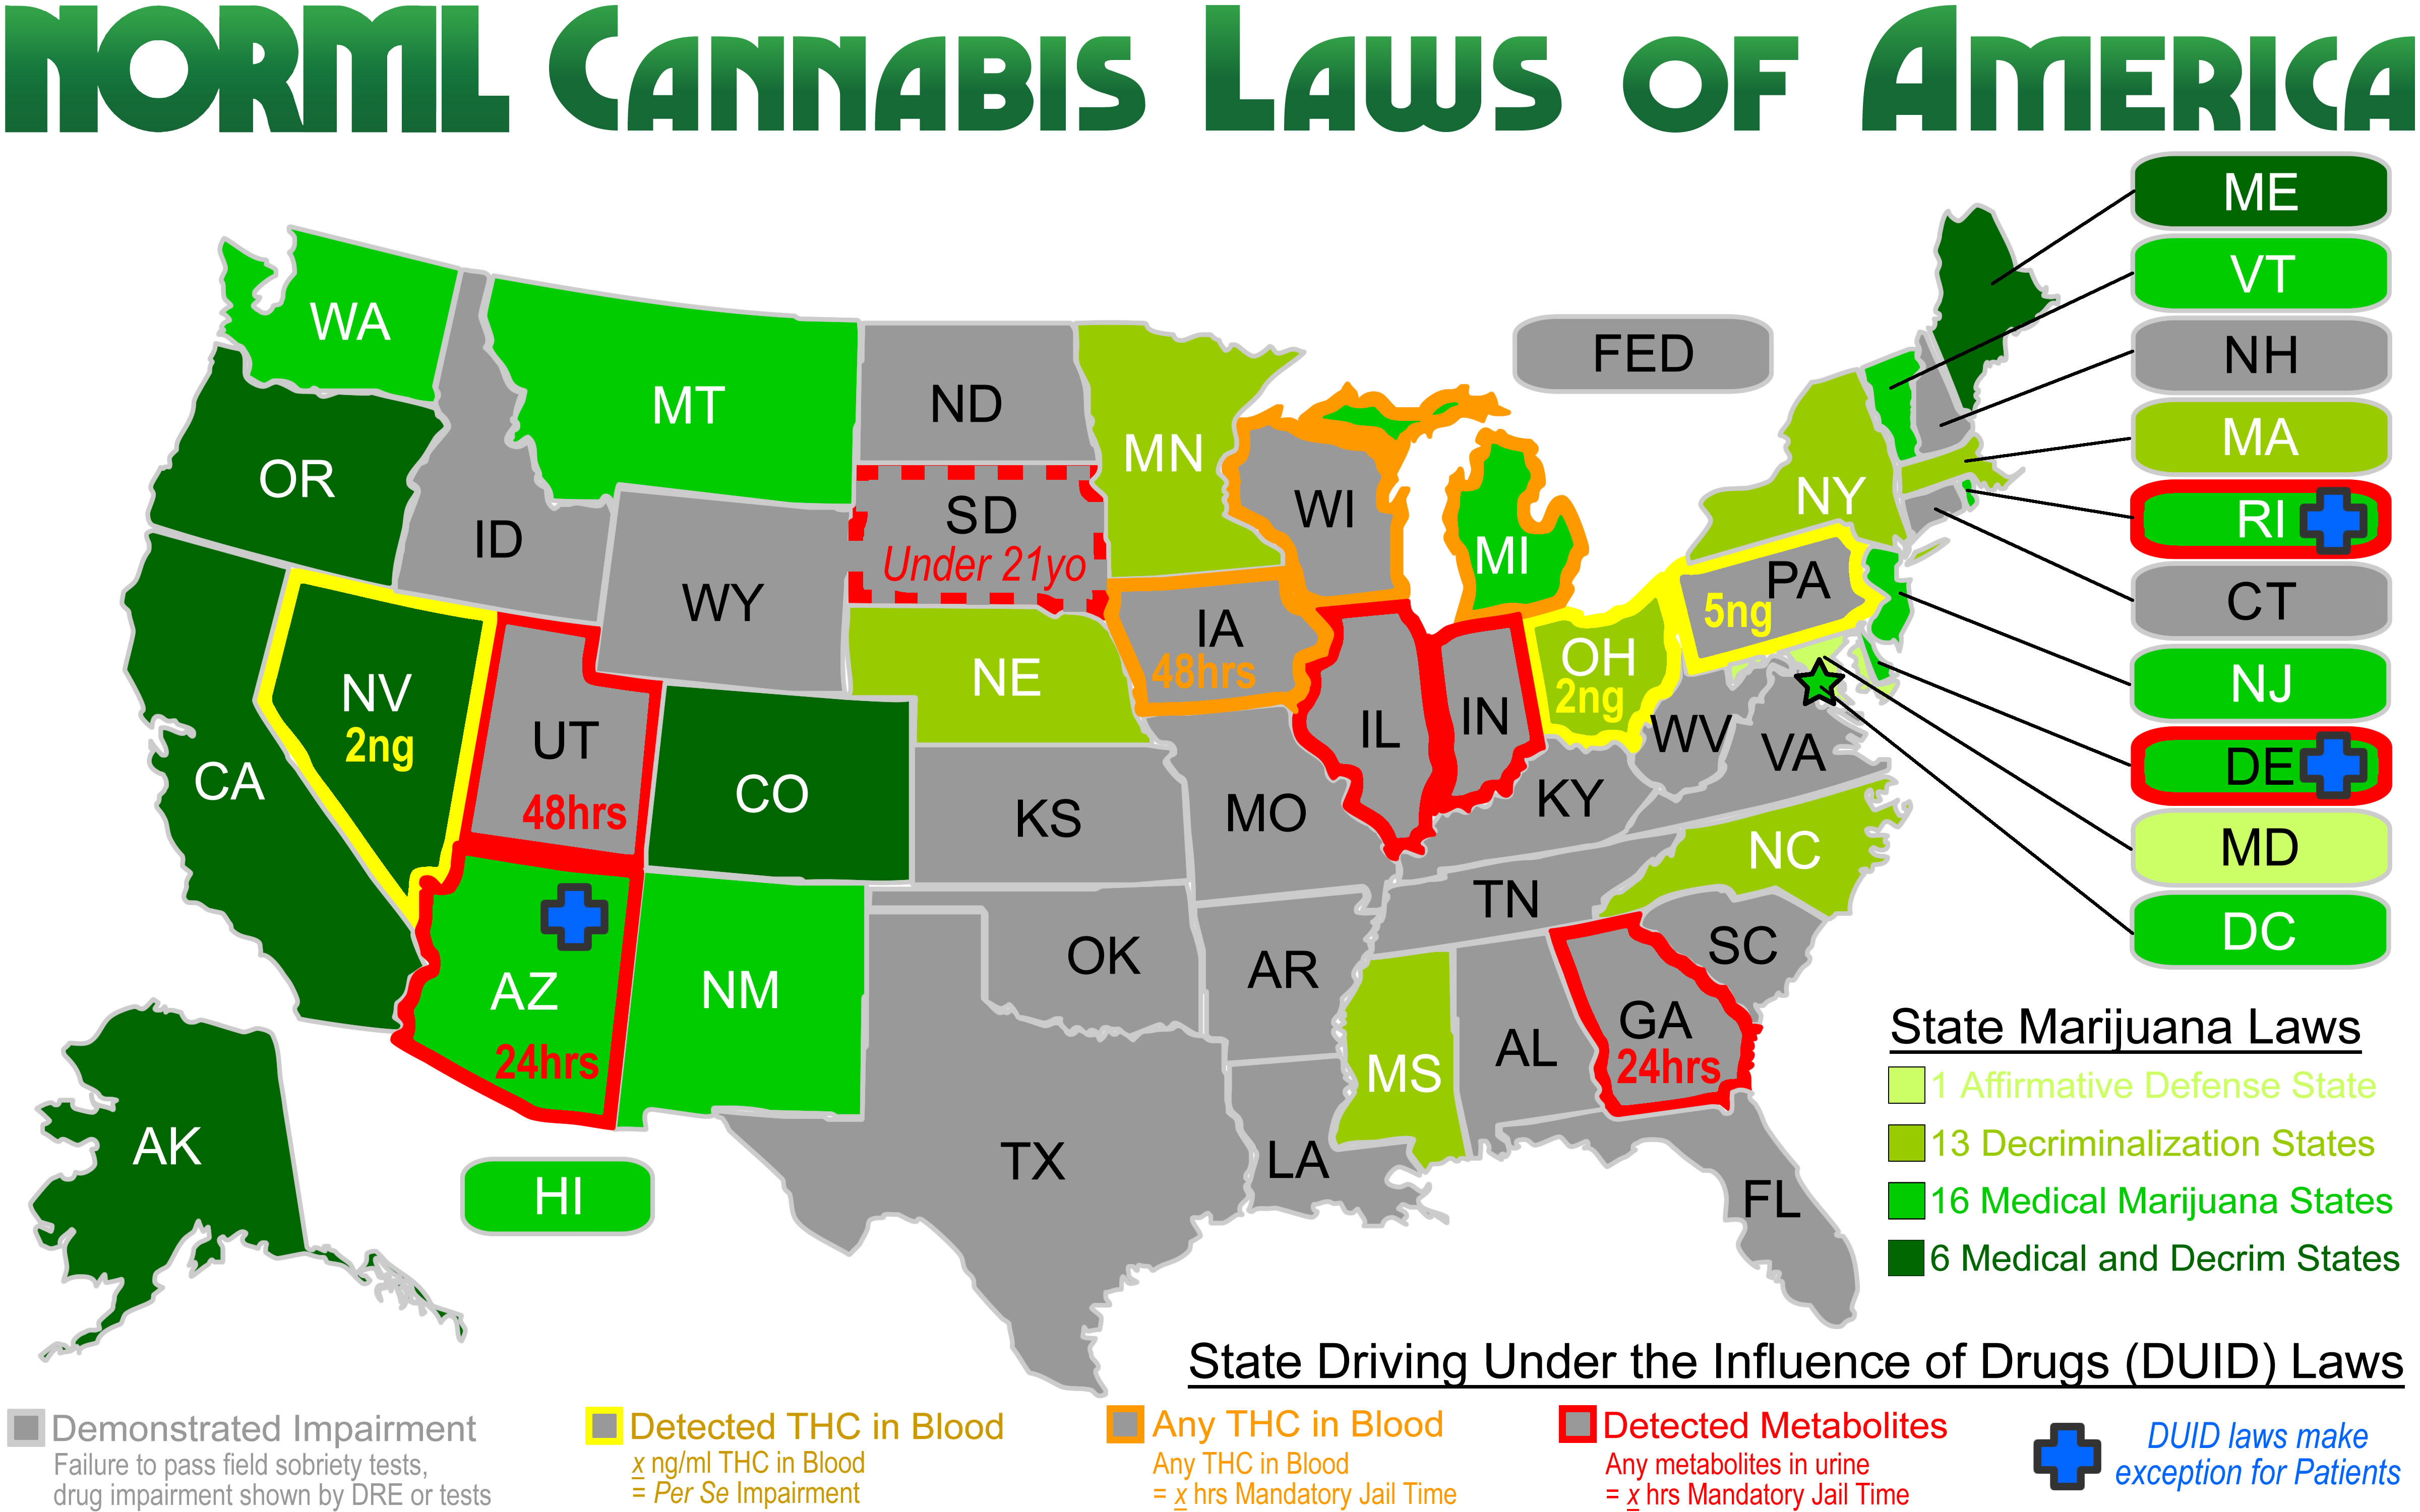 marijuana prohibition has failed united states Introduction the regulation of mind-altering drugs in the united states has been steadily expanding since the early 20th century it is necessary to briefly review this history in order to place in context the current status of marijuana, and medical marijuana in particular.